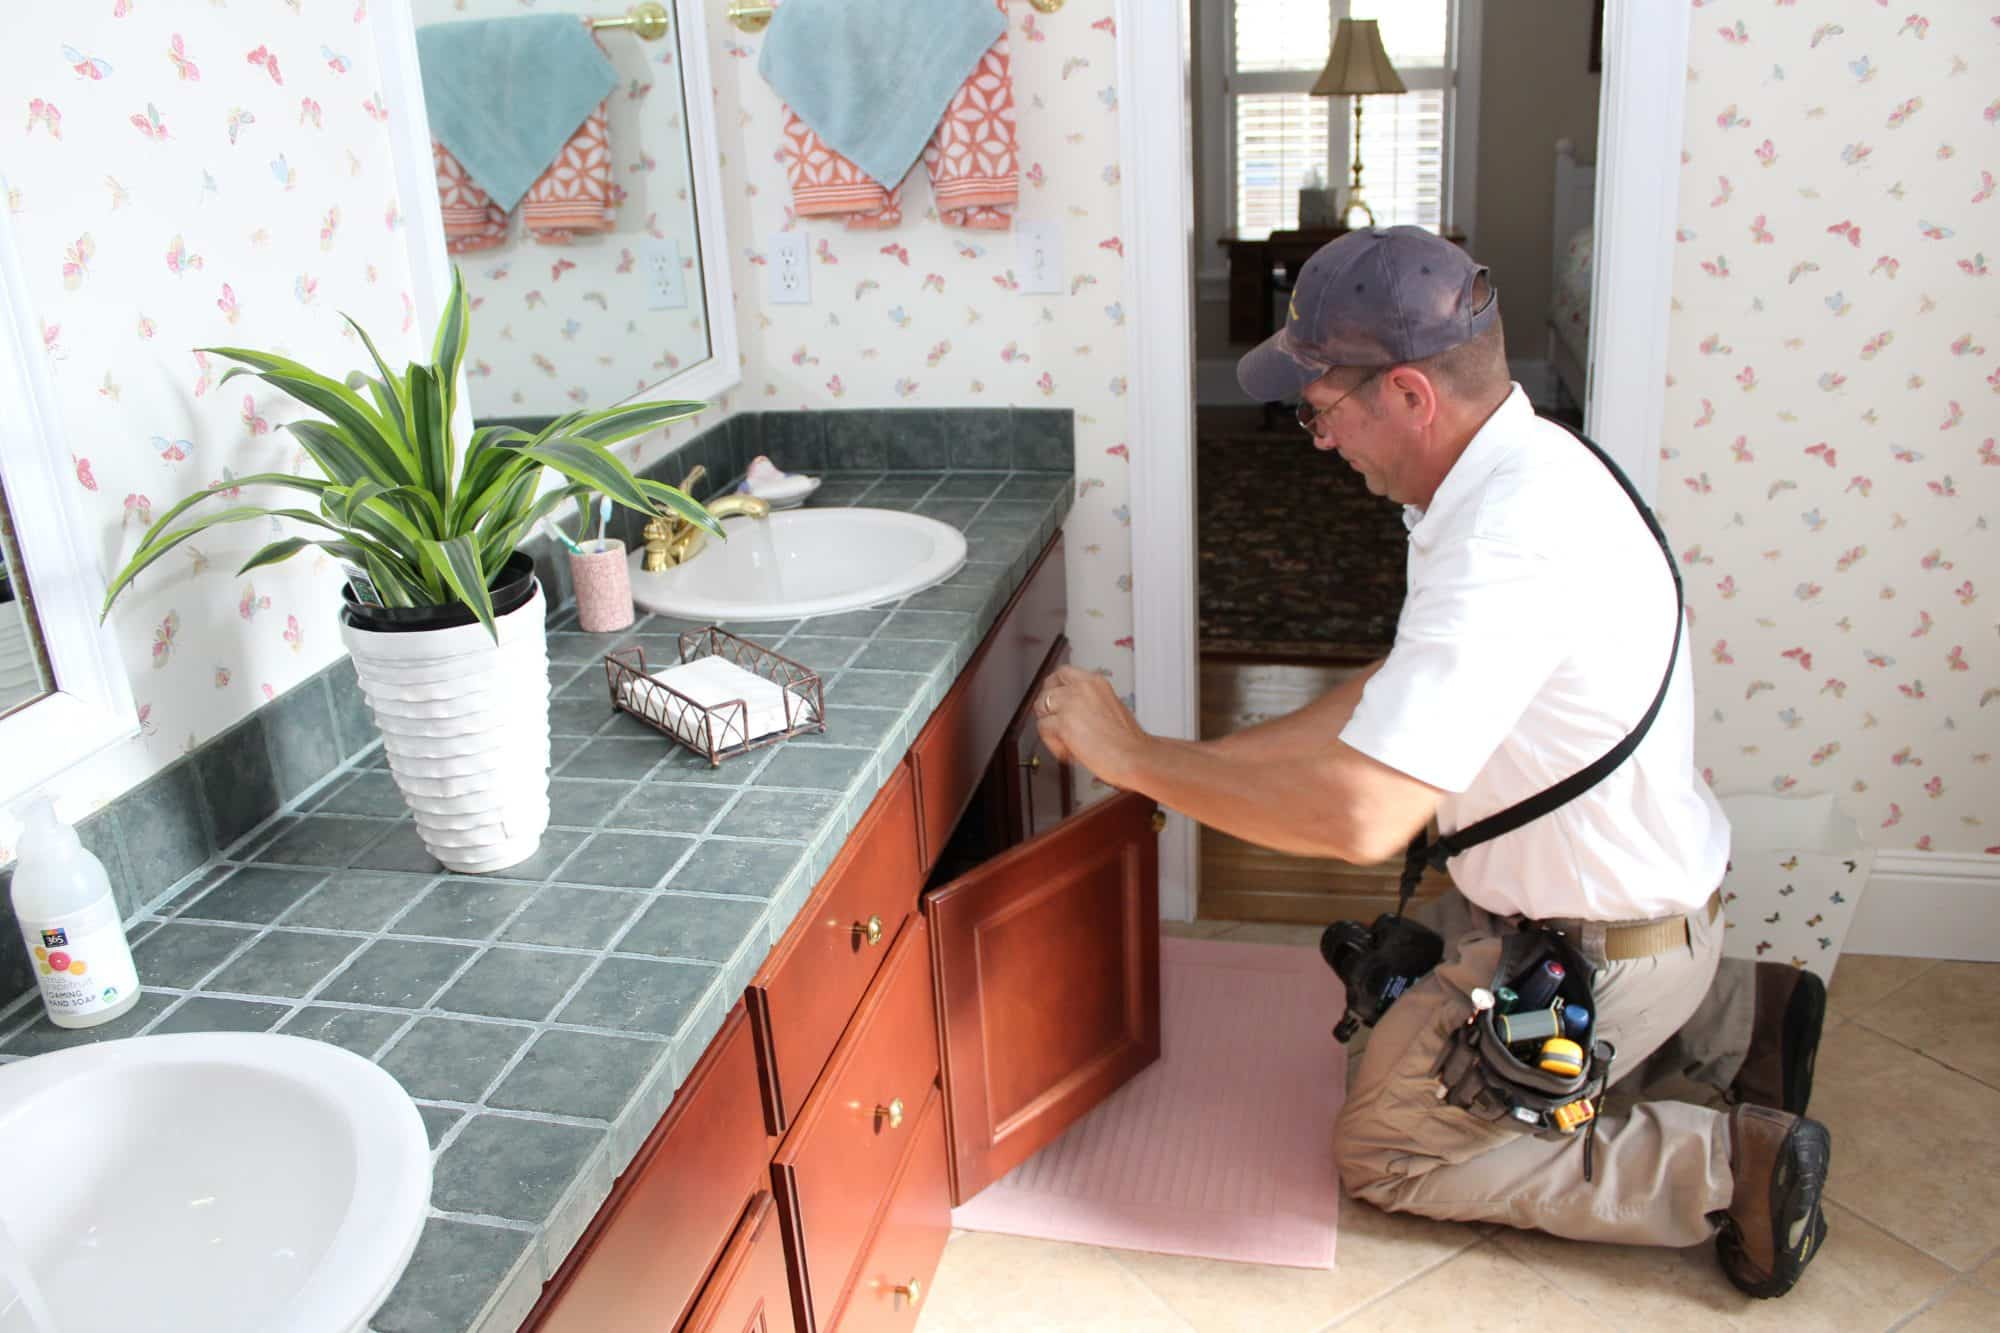 inspector looking under bathroom cabinets